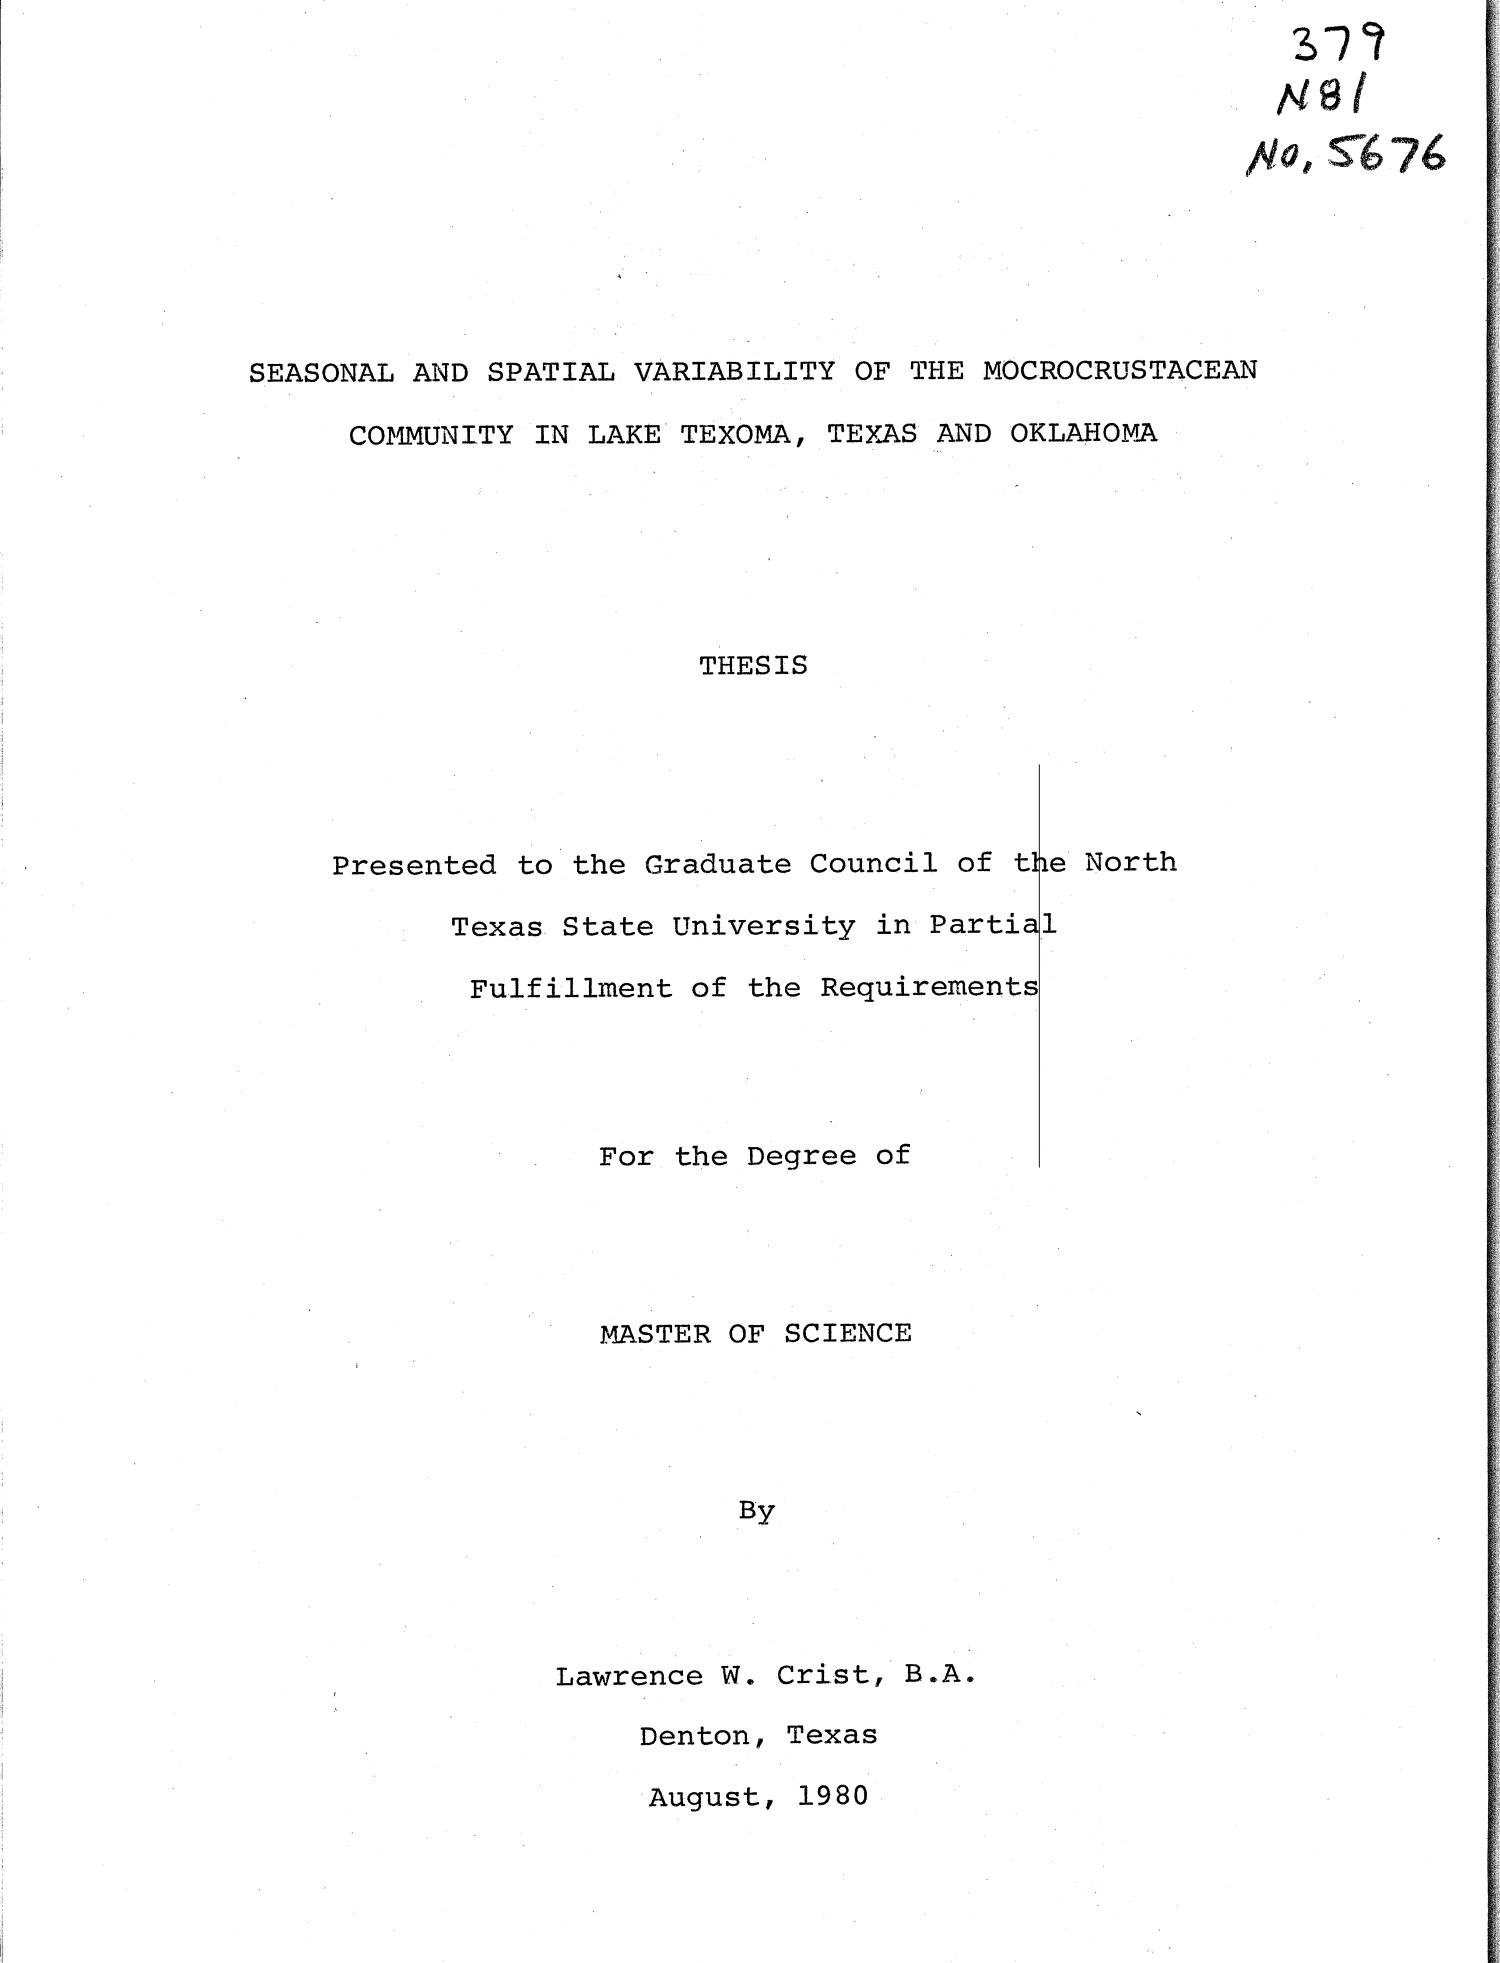 Seasonal and Spatial Variability of the Microcrustacean Community in Lake Texoma, Texas and Oklahoma                                                                                                      Title Page